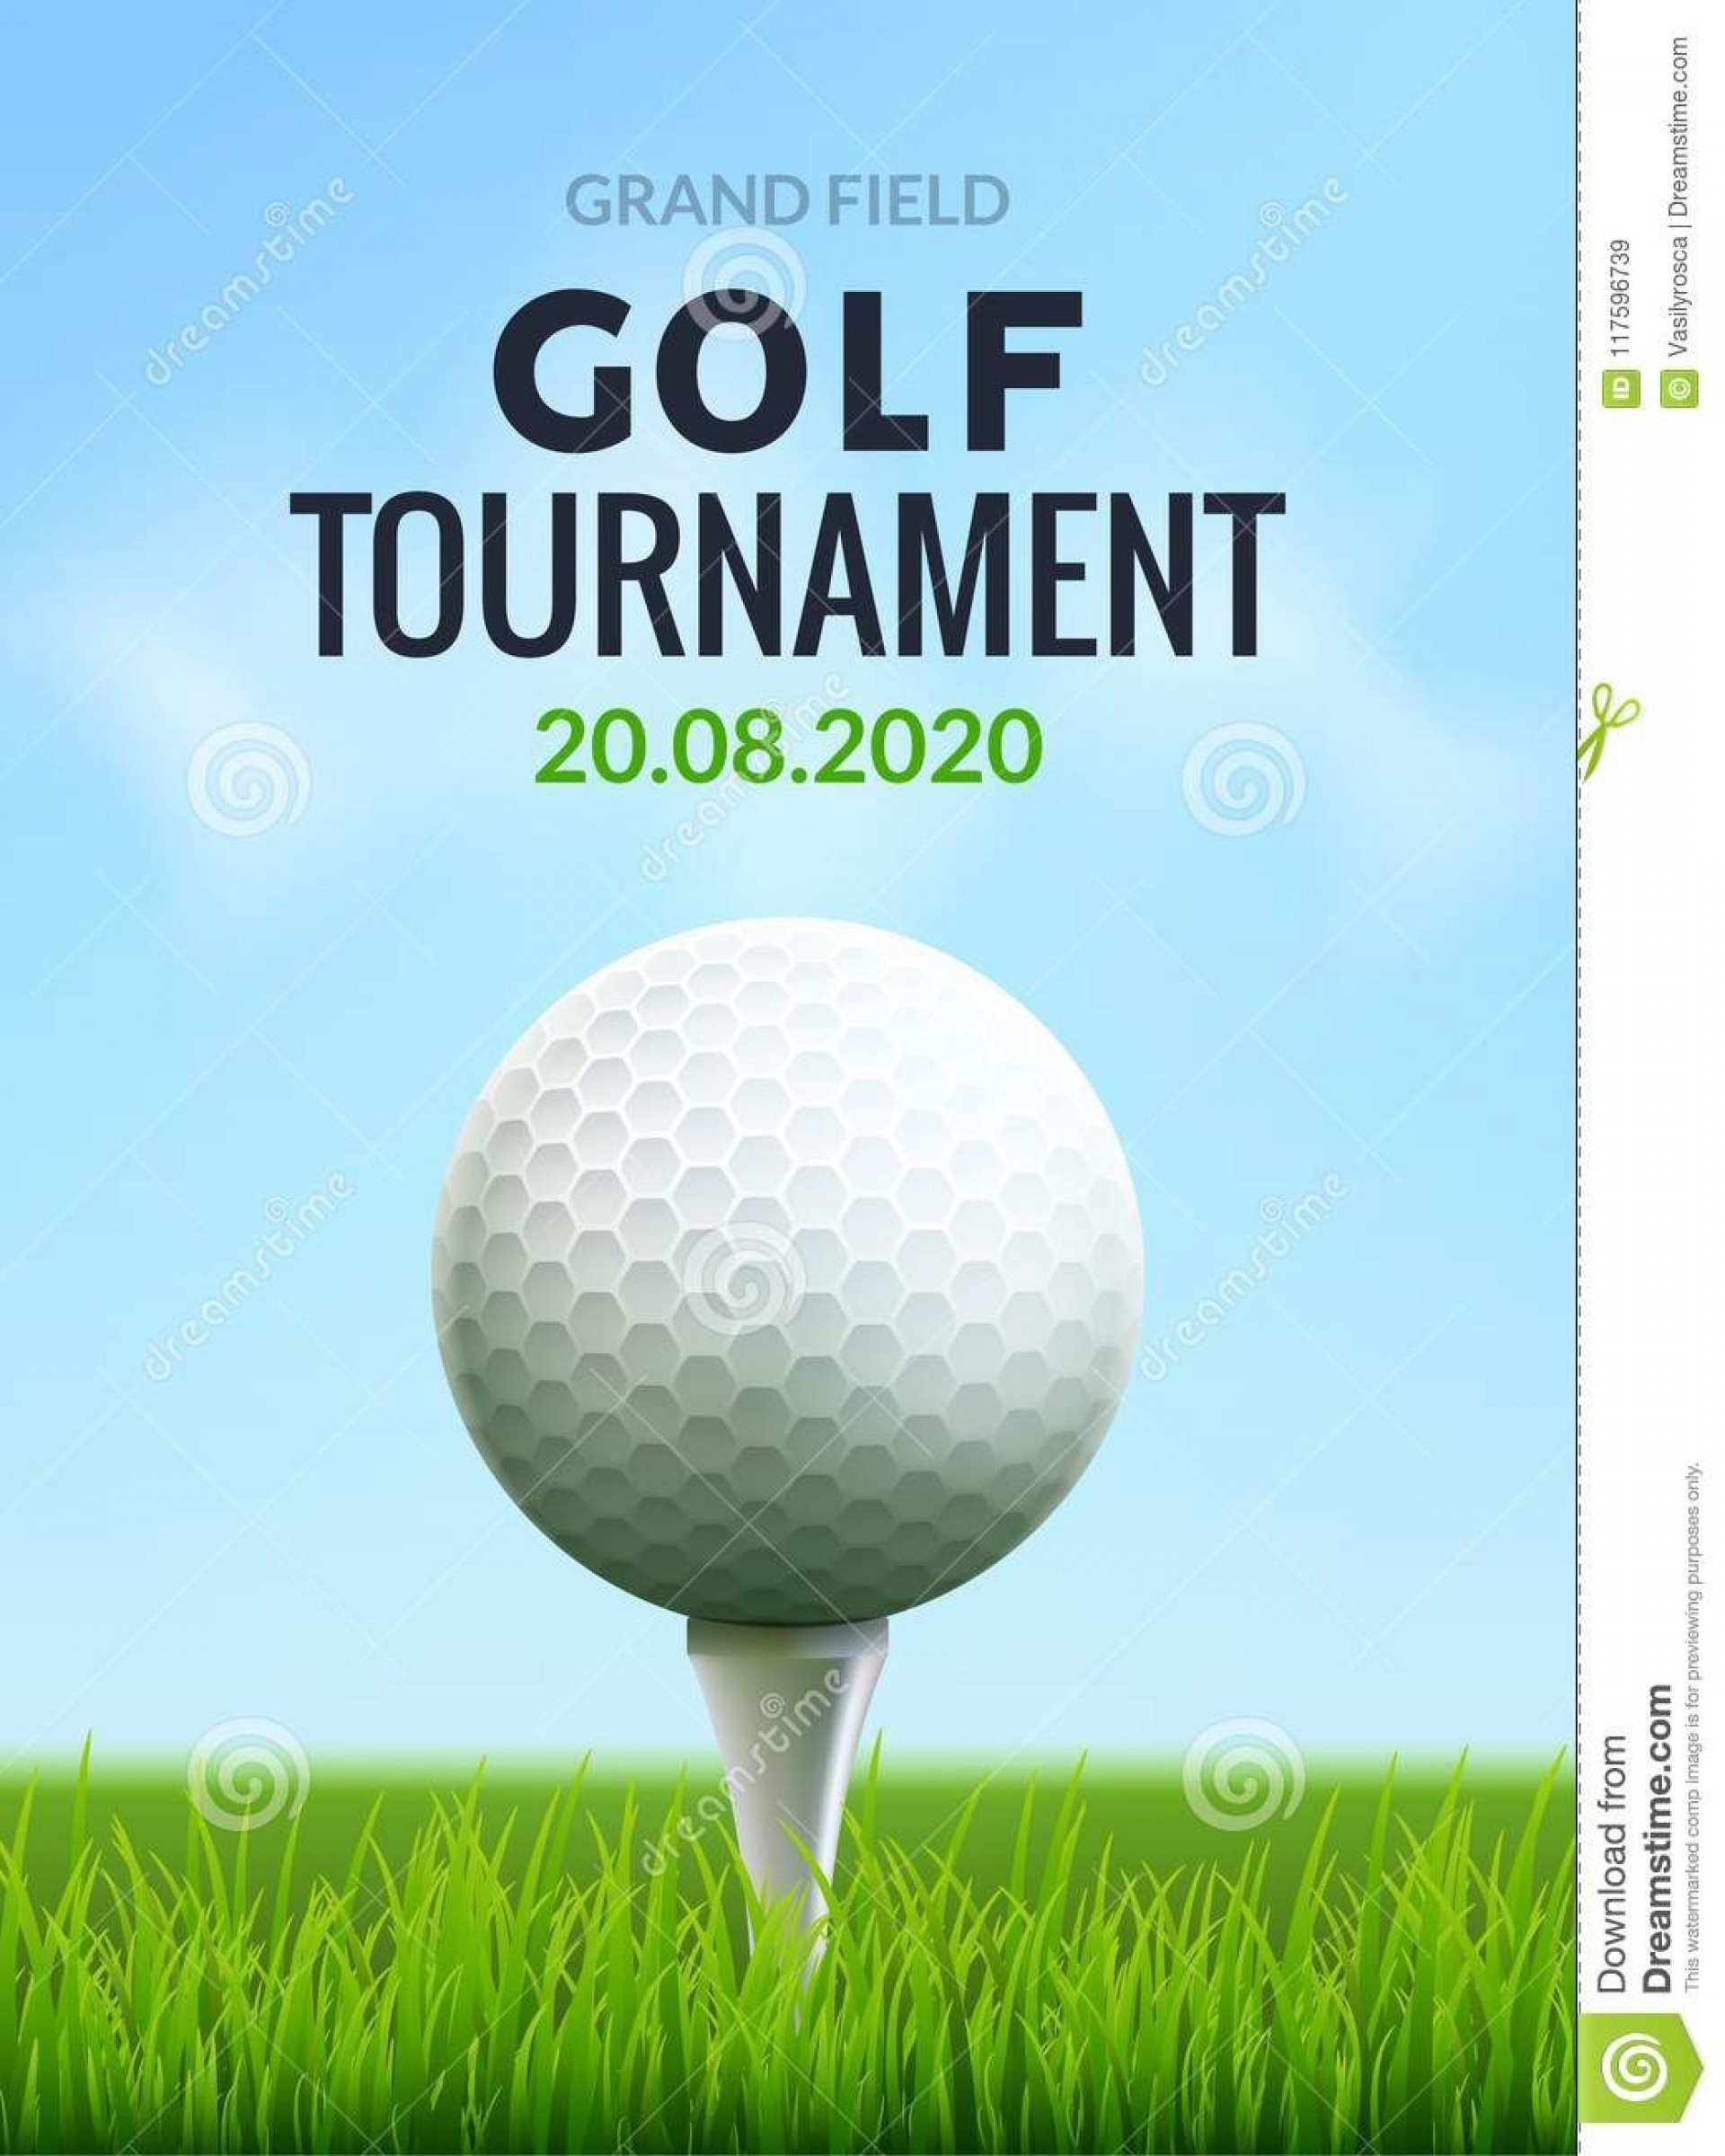 009 Surprising Golf Tournament Flyer Template Highest Clarity  Word Free Pdf1920